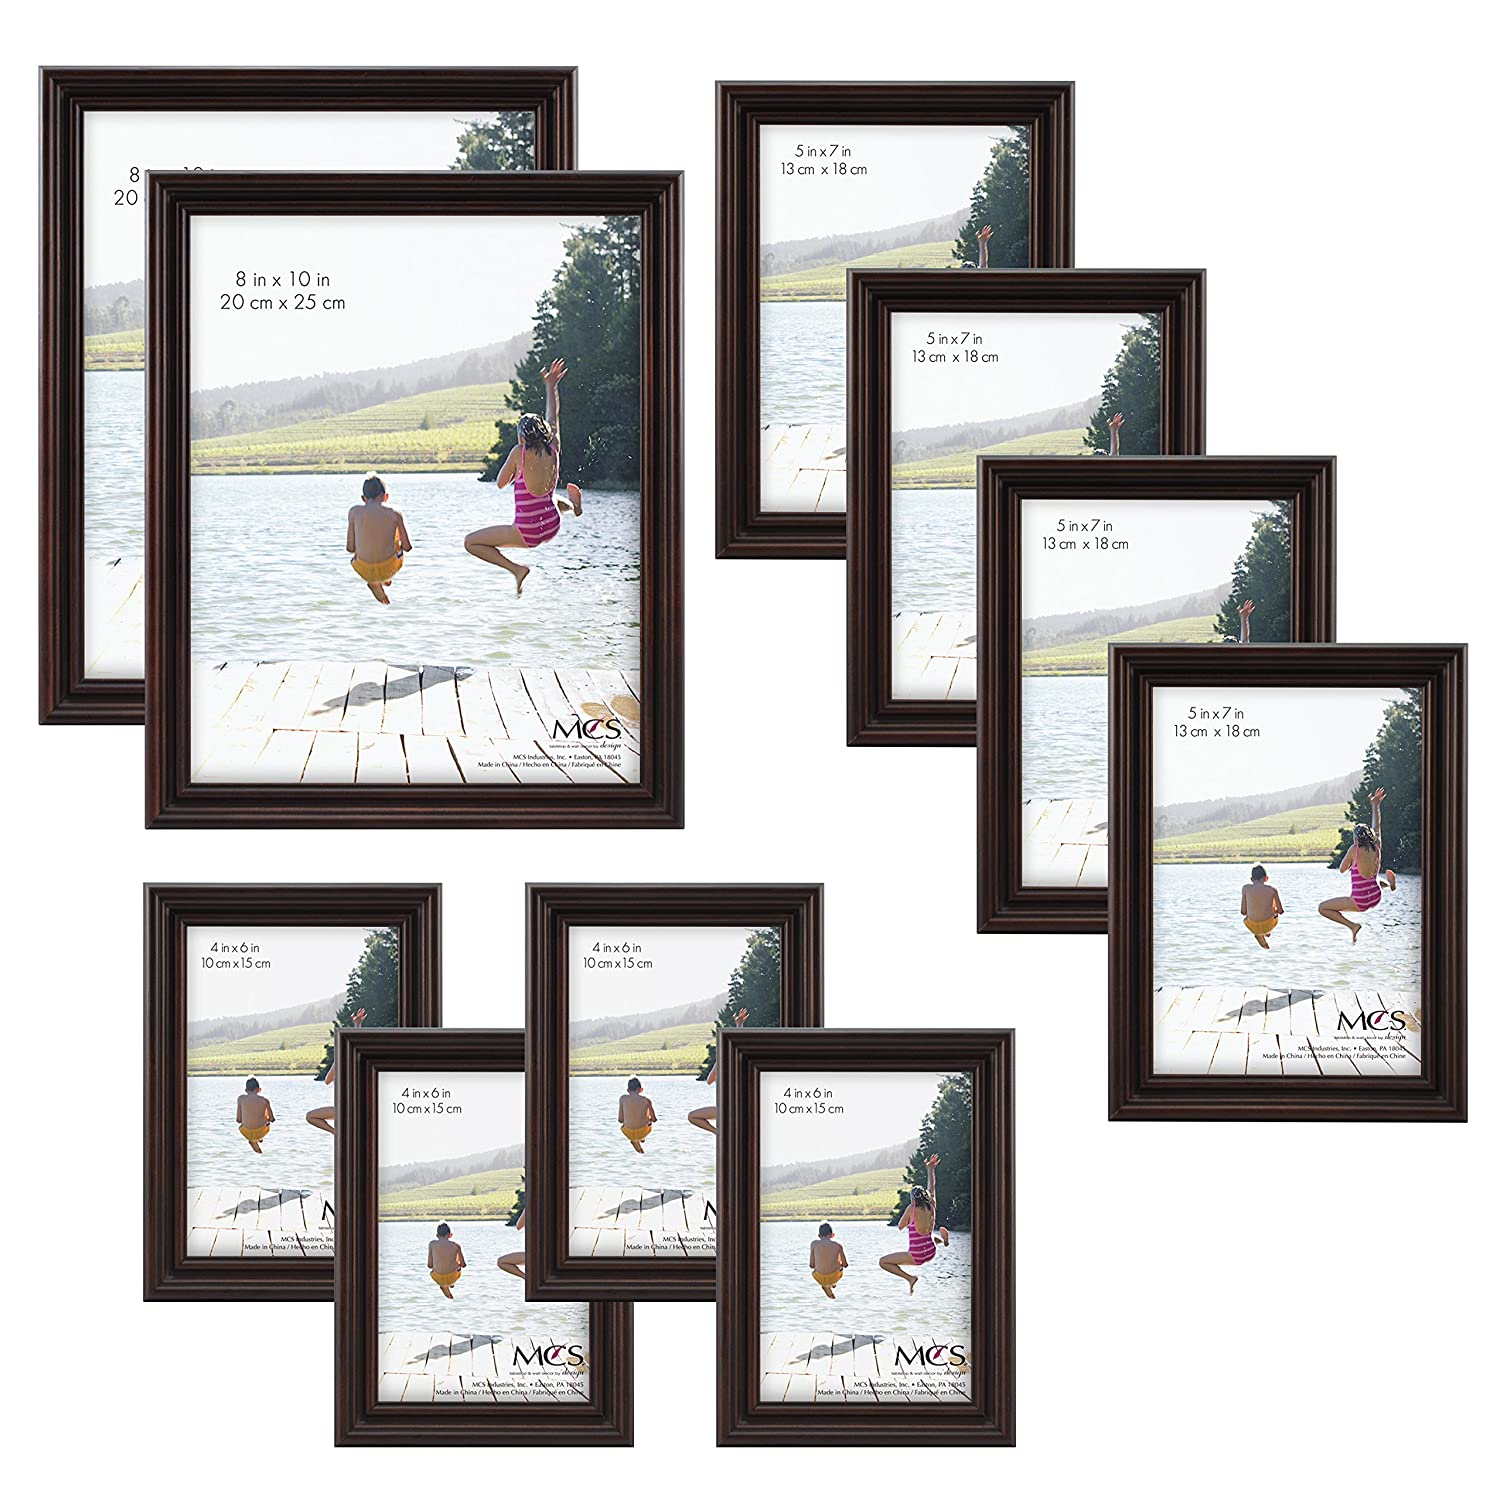 a9bee881586 Amazon.com  MCS 10pc Multi Pack Picture Frame Value Set - Two 8x10 Inch